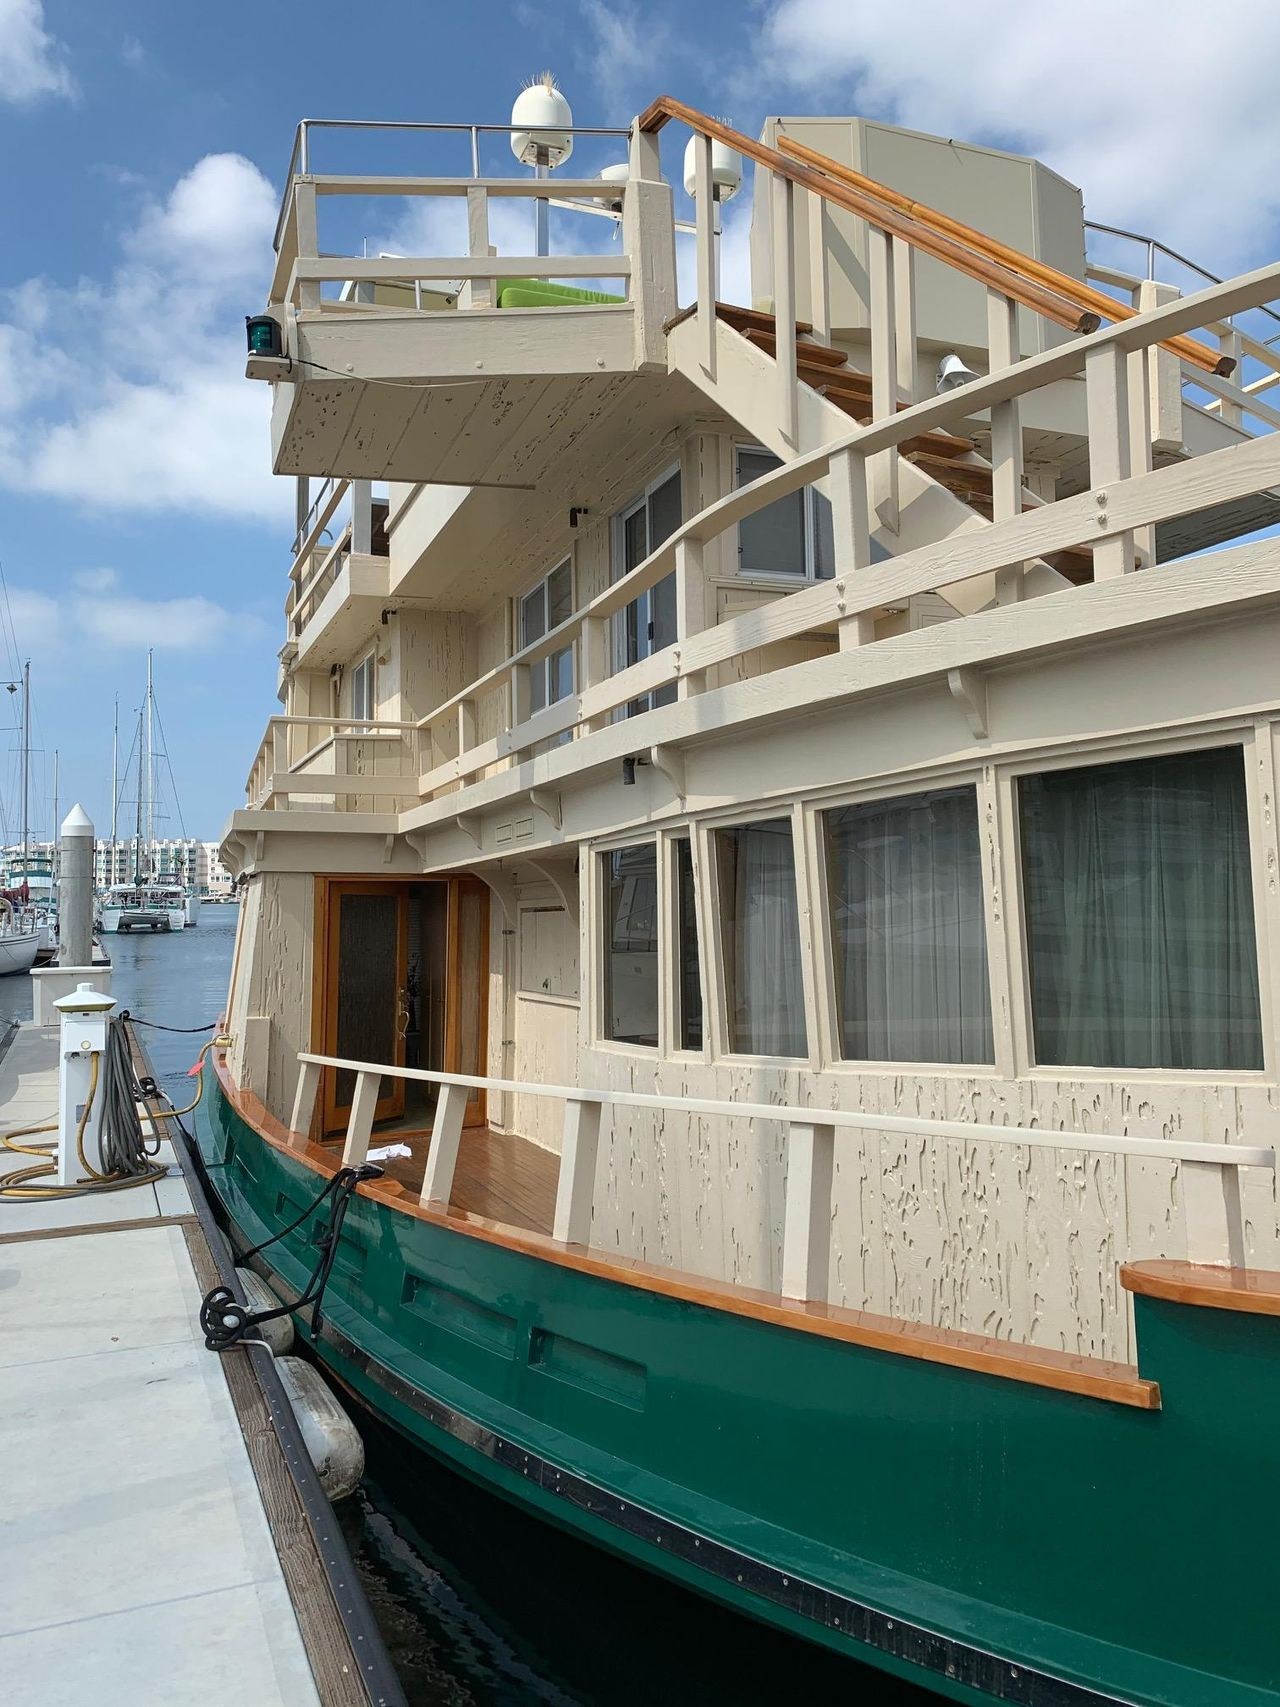 1919 Used Tugboat House Boat For Sale - $795,000 - Marina del Rey